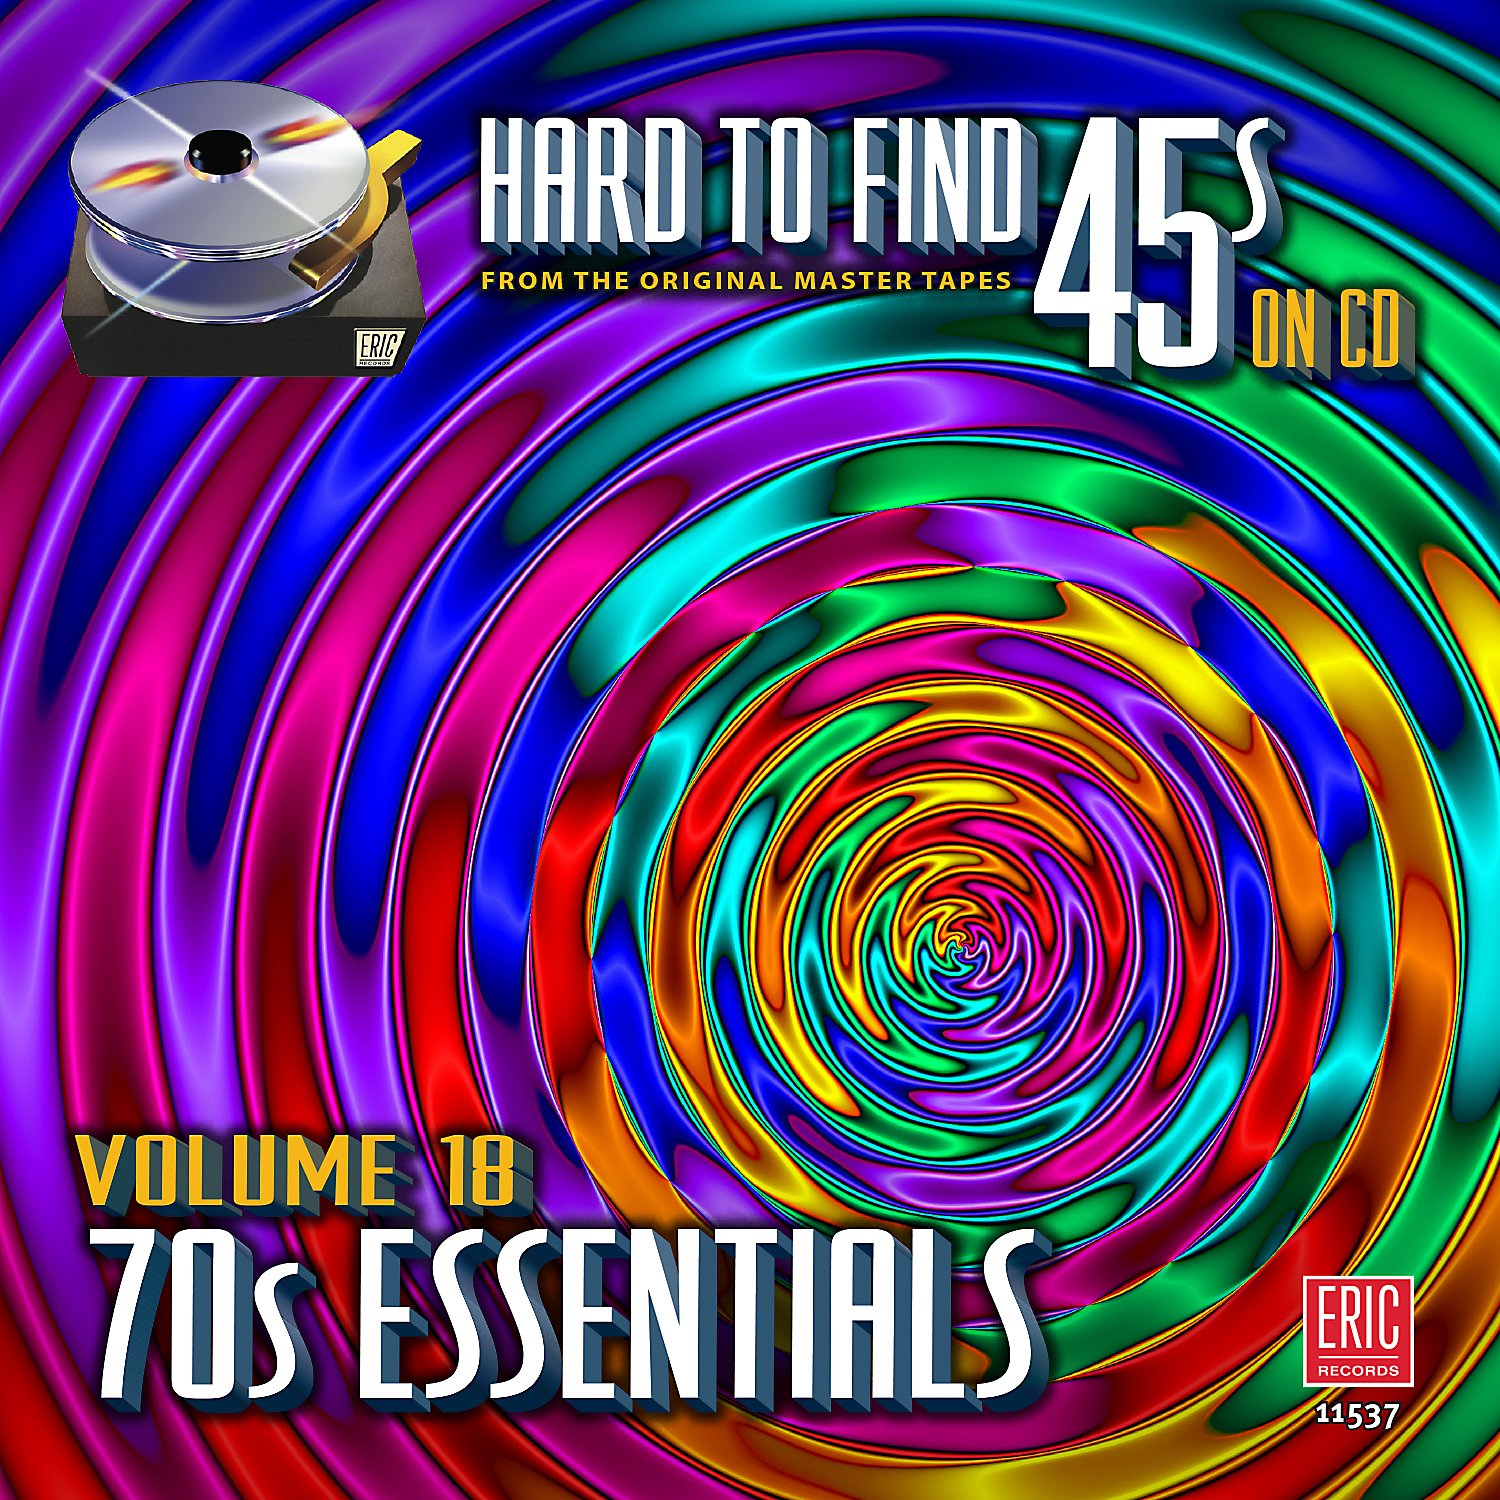 Hard To Find 45s On Cd, Volume 18 - 70s Essentials by Eric